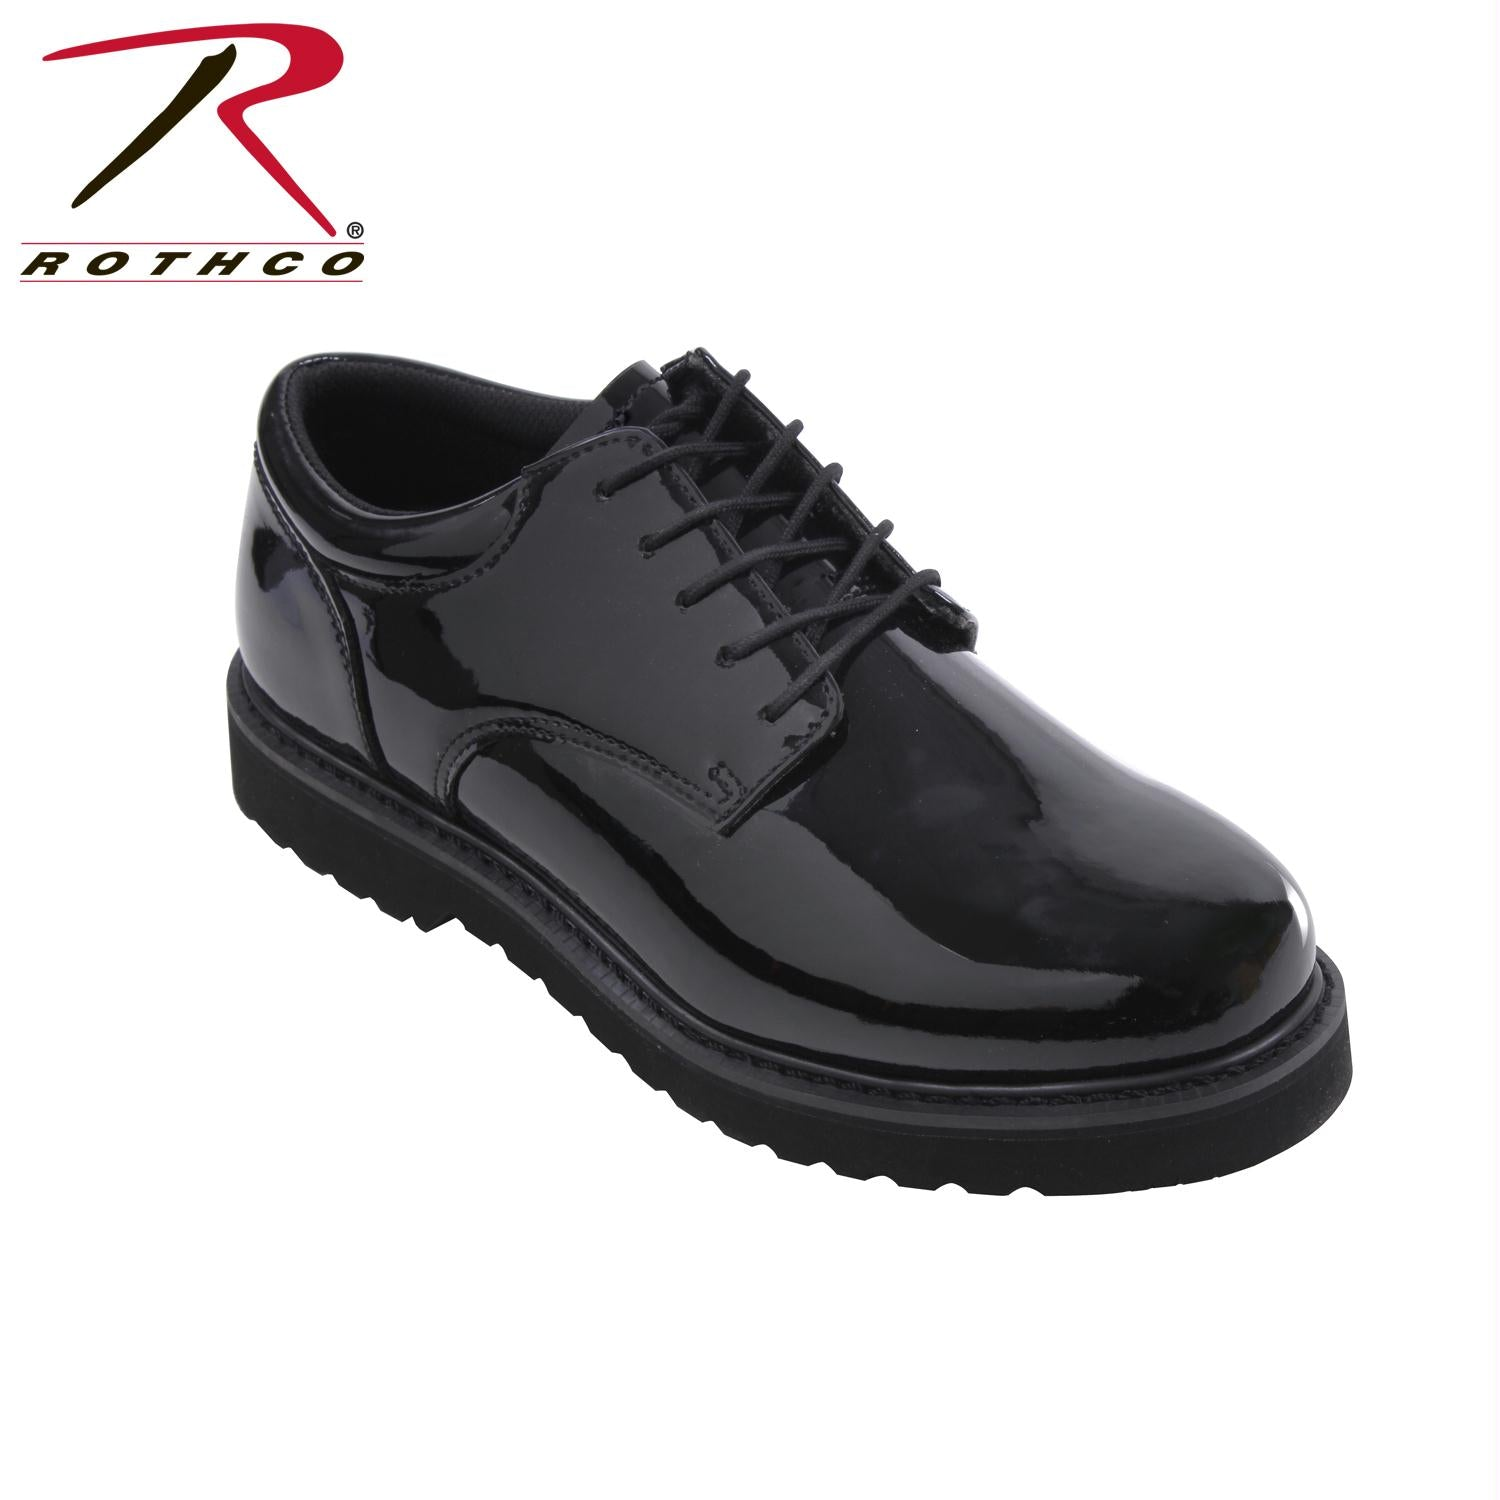 Rothco Uniform Oxford Work Sole - 10 / Wide